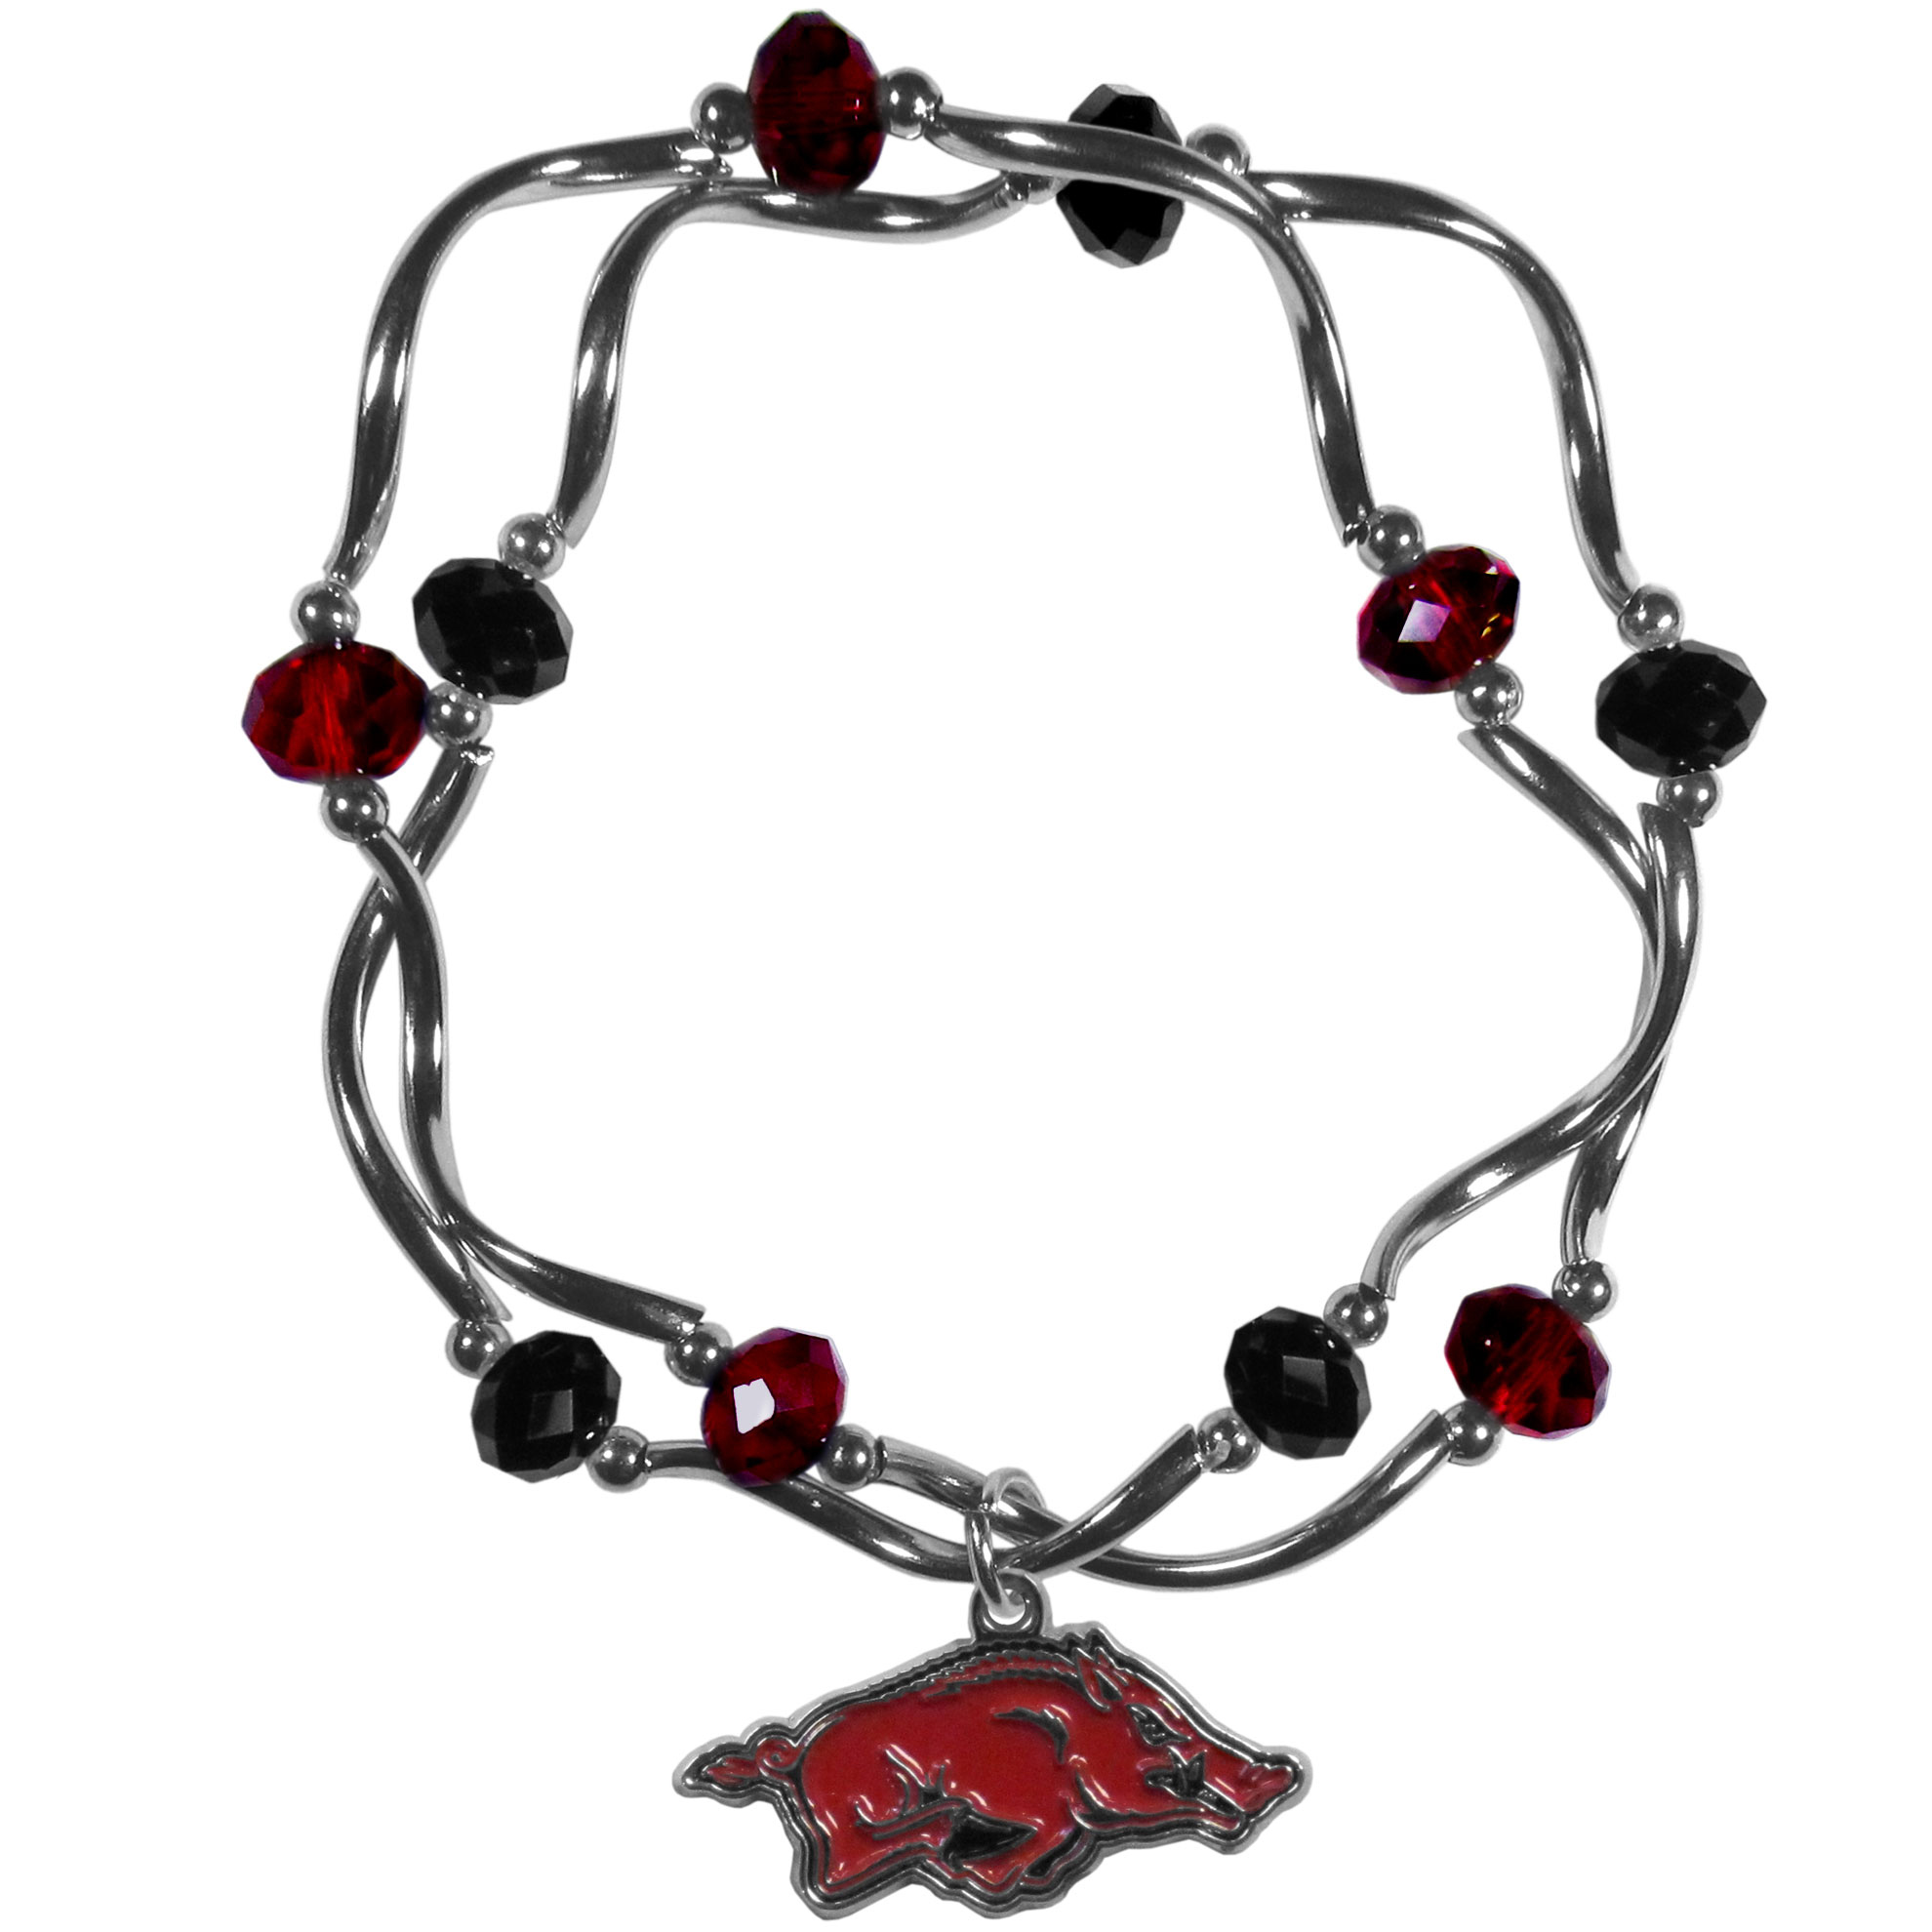 Arkansas Razorbacks Crystal Bead Bracelet - This delicate bead bracelet has eye-catching team colored beads that are strung on 2 stretch cords that provide a comfortable and easy fit. The crystals are separated by beautiful helix beads in high polish chrome for a truly designer inspired look. The 2 strands of beads intertwine for a fun and stylish bracelet. This chic accessory is finished off with a Arkansas Razorbacks team charm that has expertly carved detail and an enameled color finish. A contemporary look to thrill any female sports fan. Whether this a gift for yourself or someone special you cannot miss with this trend-setting fashion bracelet.